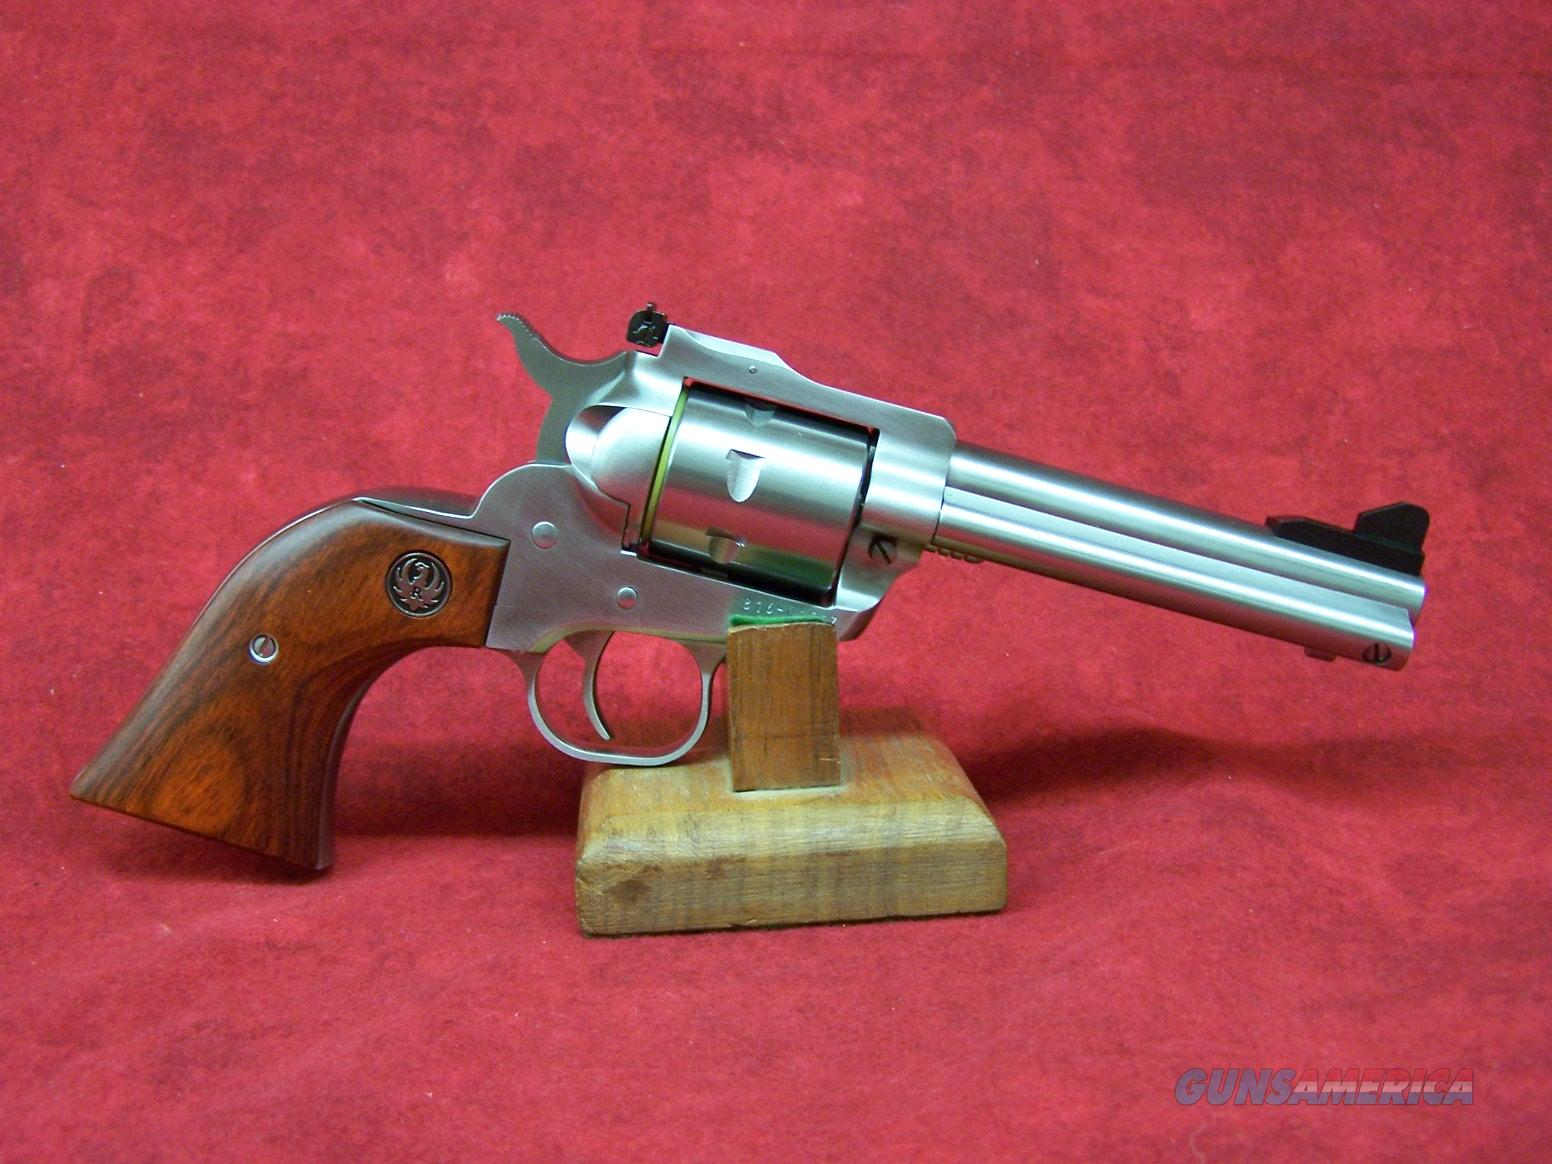 "Ruger Stainless Single Seven .327 Federal 4 5/8"" (08161)  Guns > Pistols > Ruger Single Action Revolvers > Single Six Type"